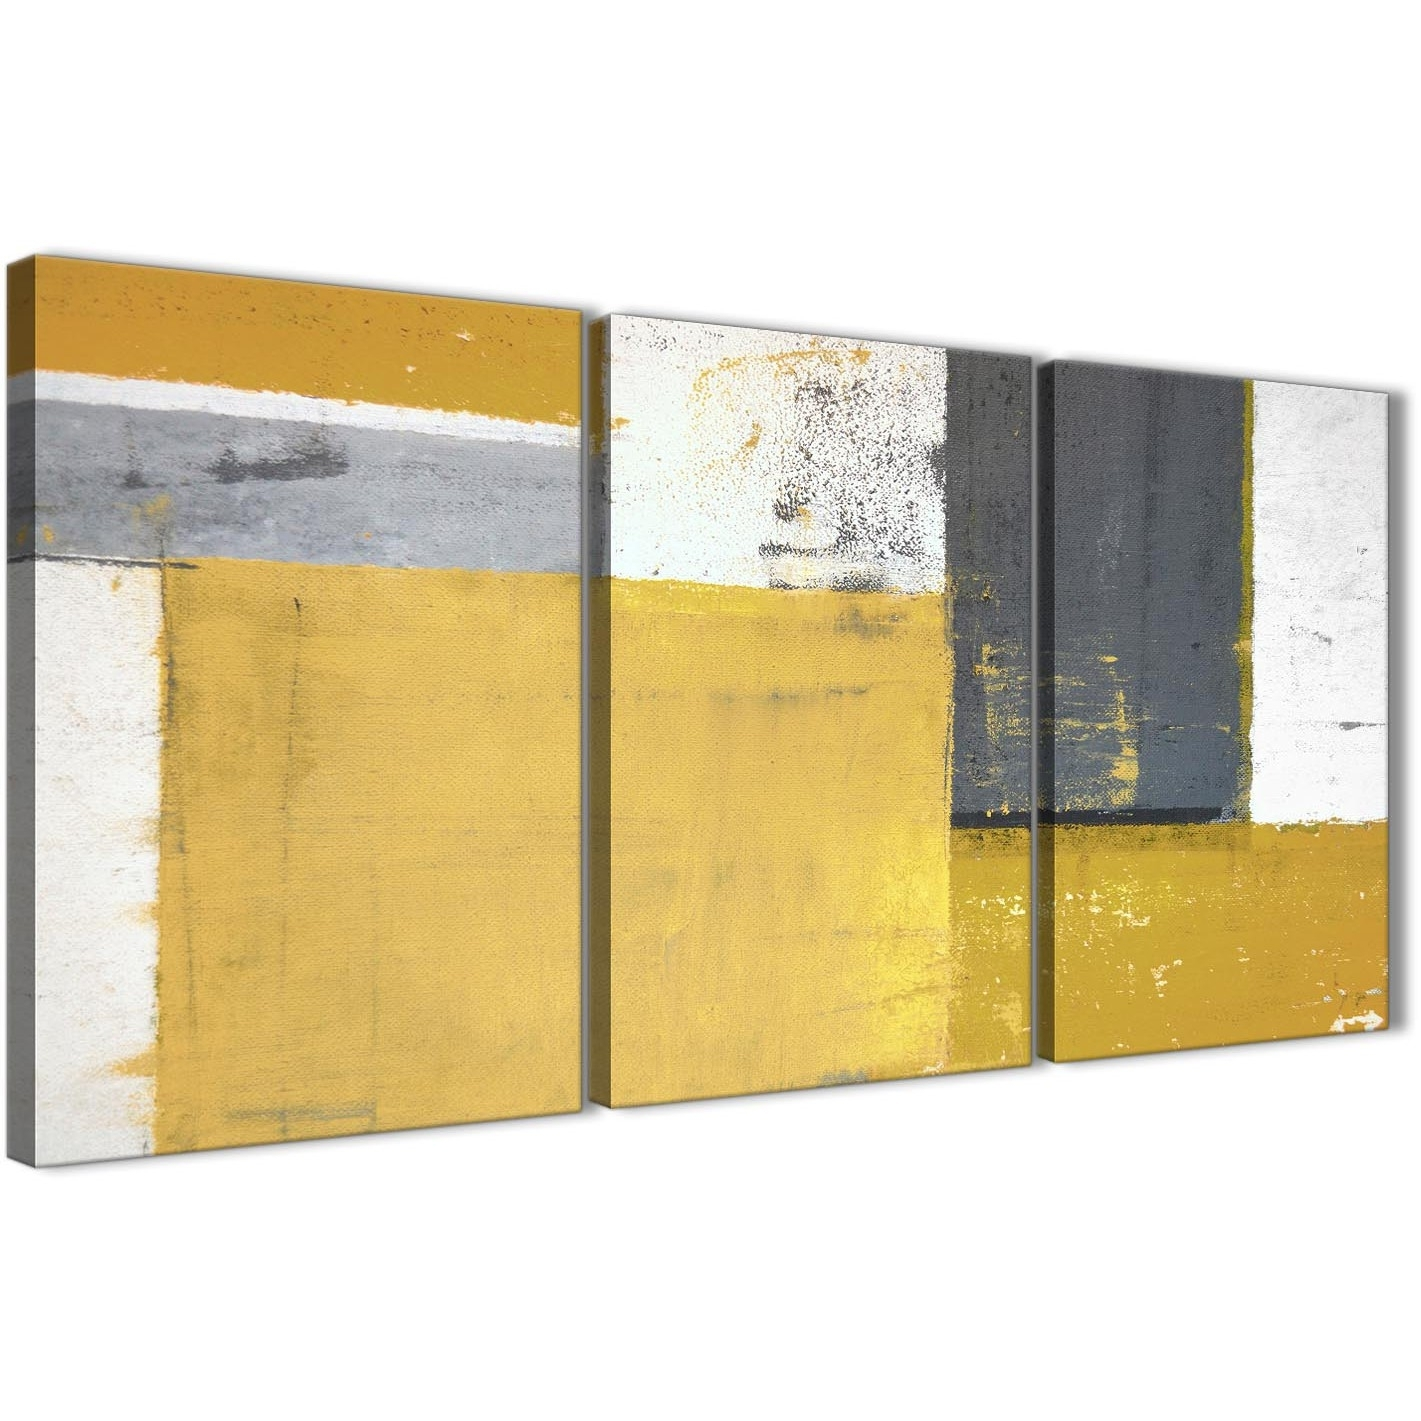 Image Gallery of Grey Abstract Canvas Wall Art (View 4 of 20 Photos)